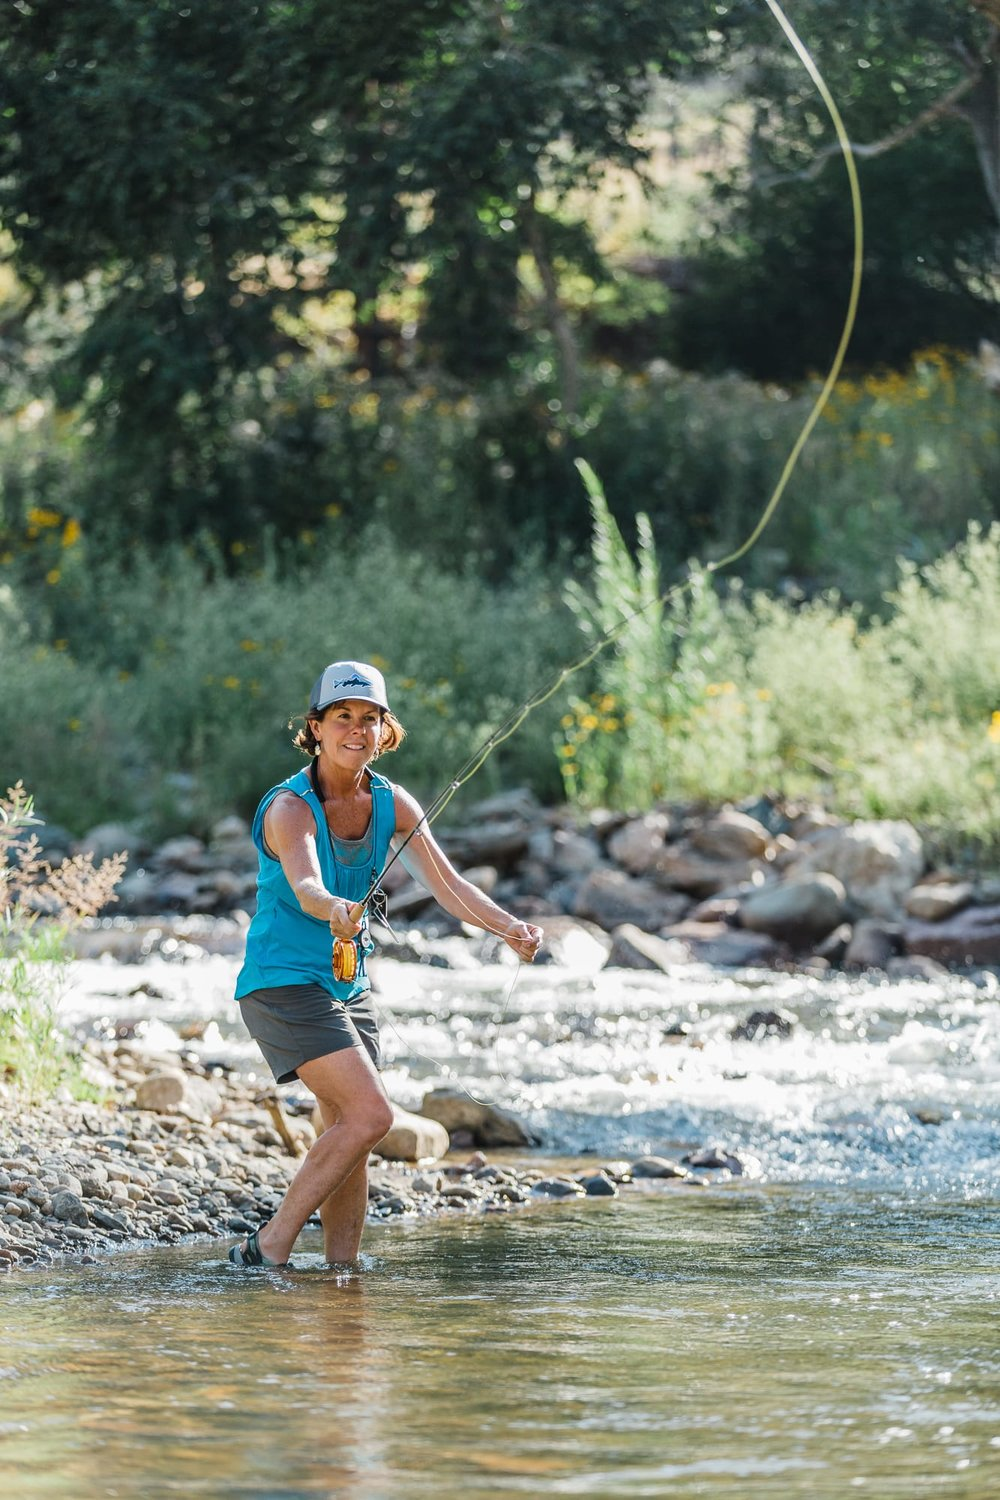 Wide shot of a woman fly fishing along the edge of a river with a concentrated look on her face.